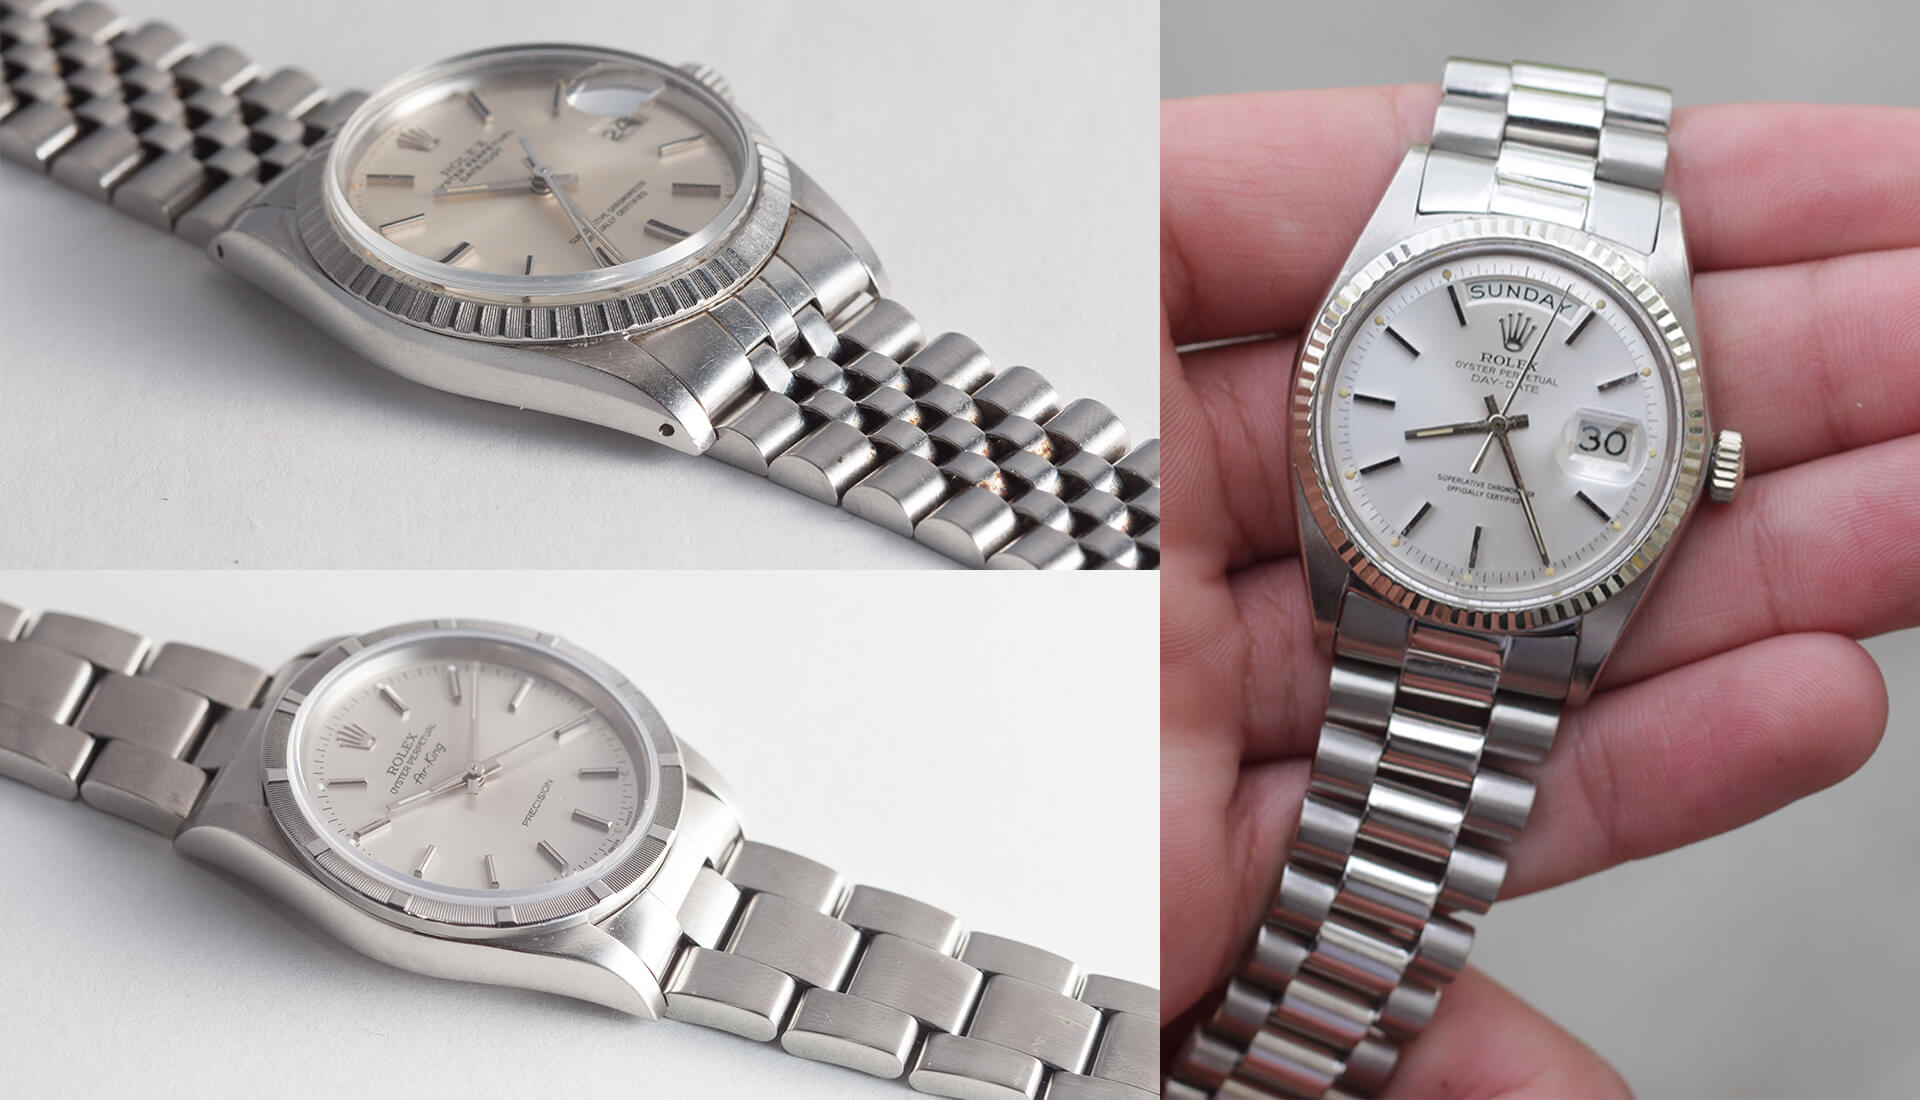 Watch 101: What Are the Different Bracelets on Rolex Watches?